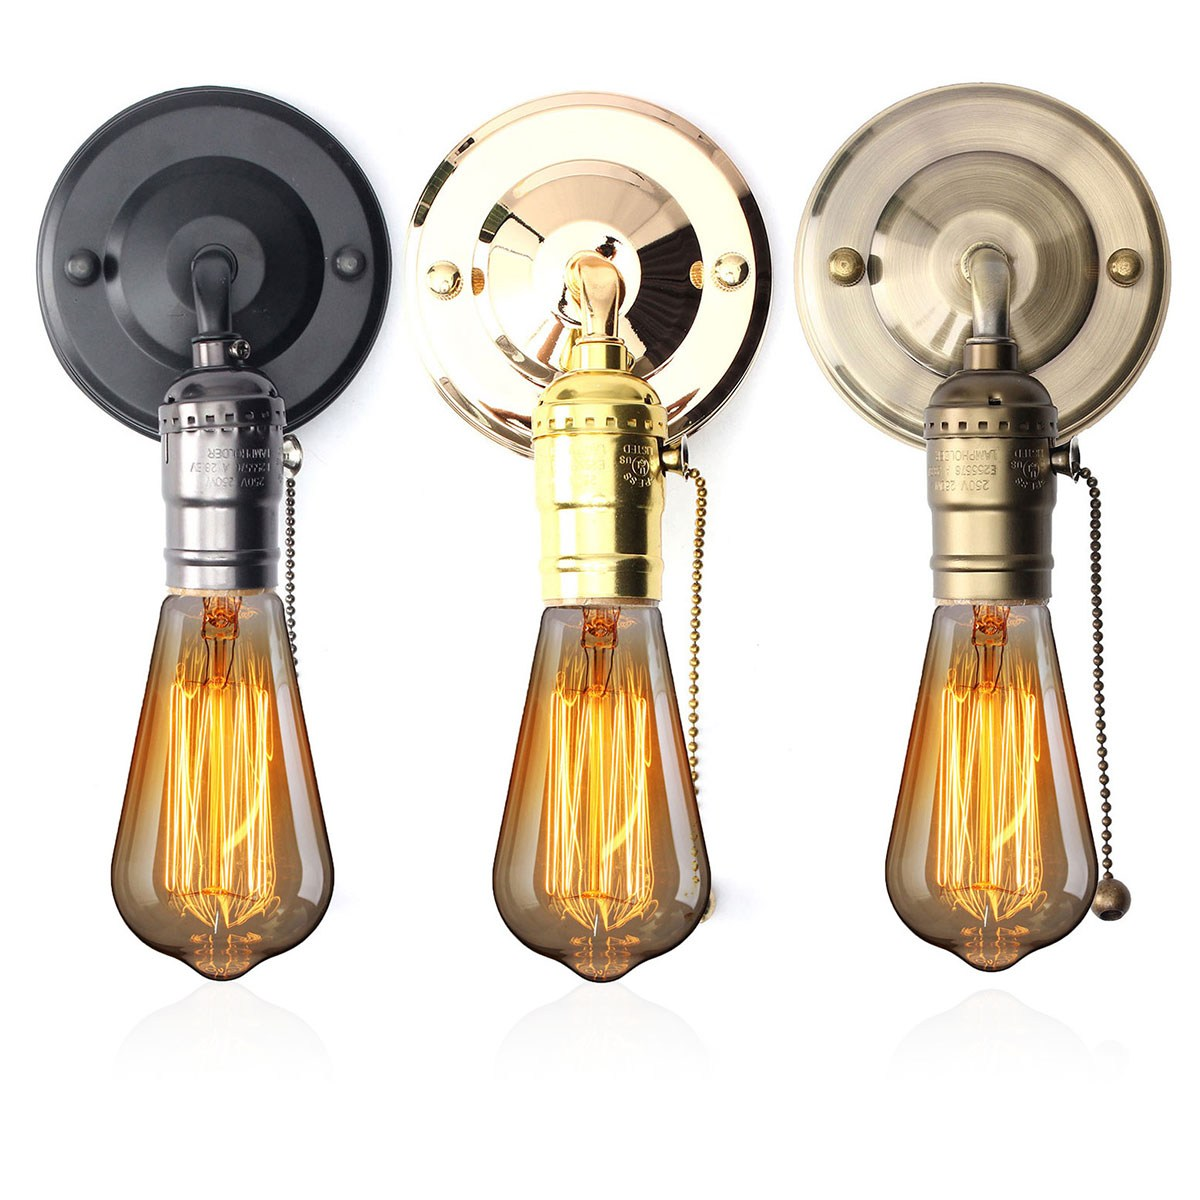 3 Style Vintage Copper Iron Wall Light Sconce Holder Colorful Lamp Fixture  Pull Cord Switch Hallway